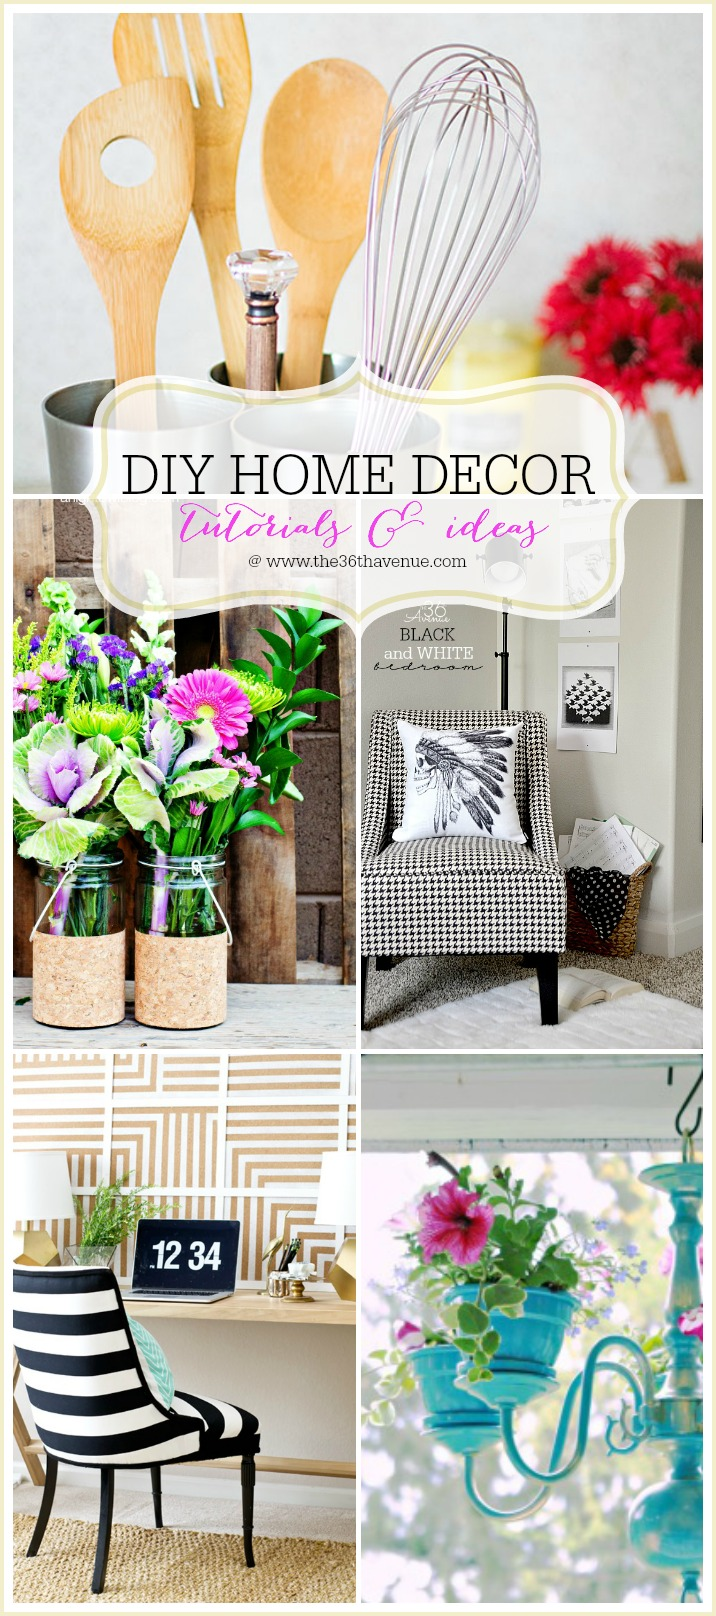 The 36th avenue home decor diy projects the 36th avenue for At home picture ideas